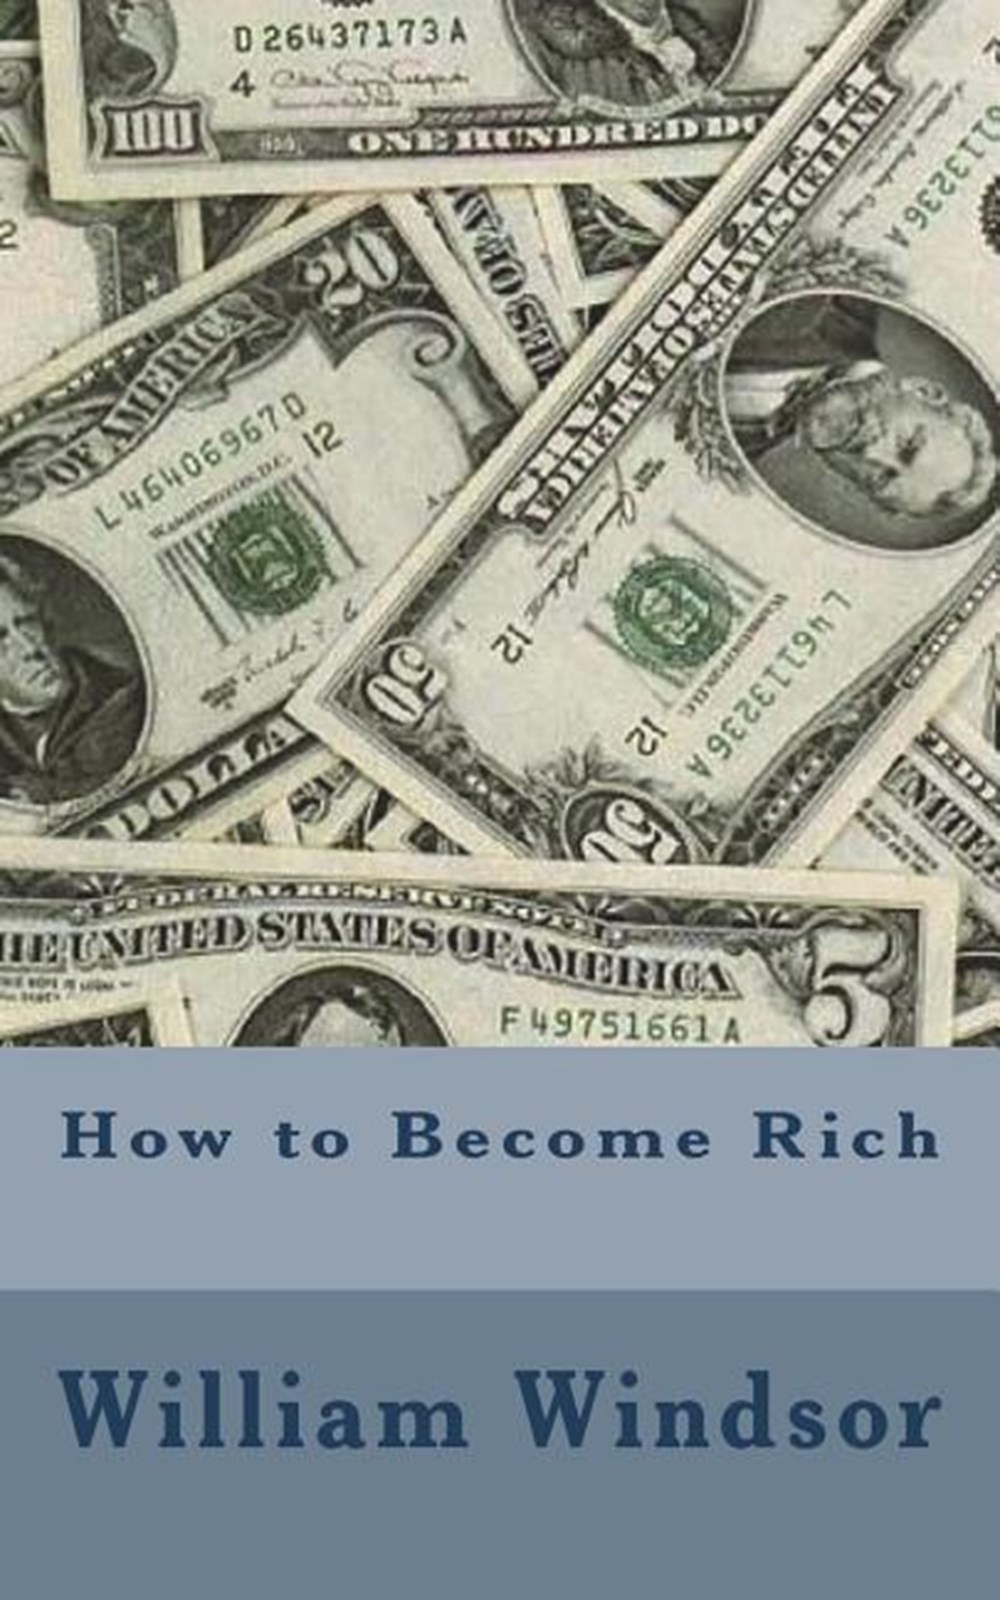 How to Become Rich